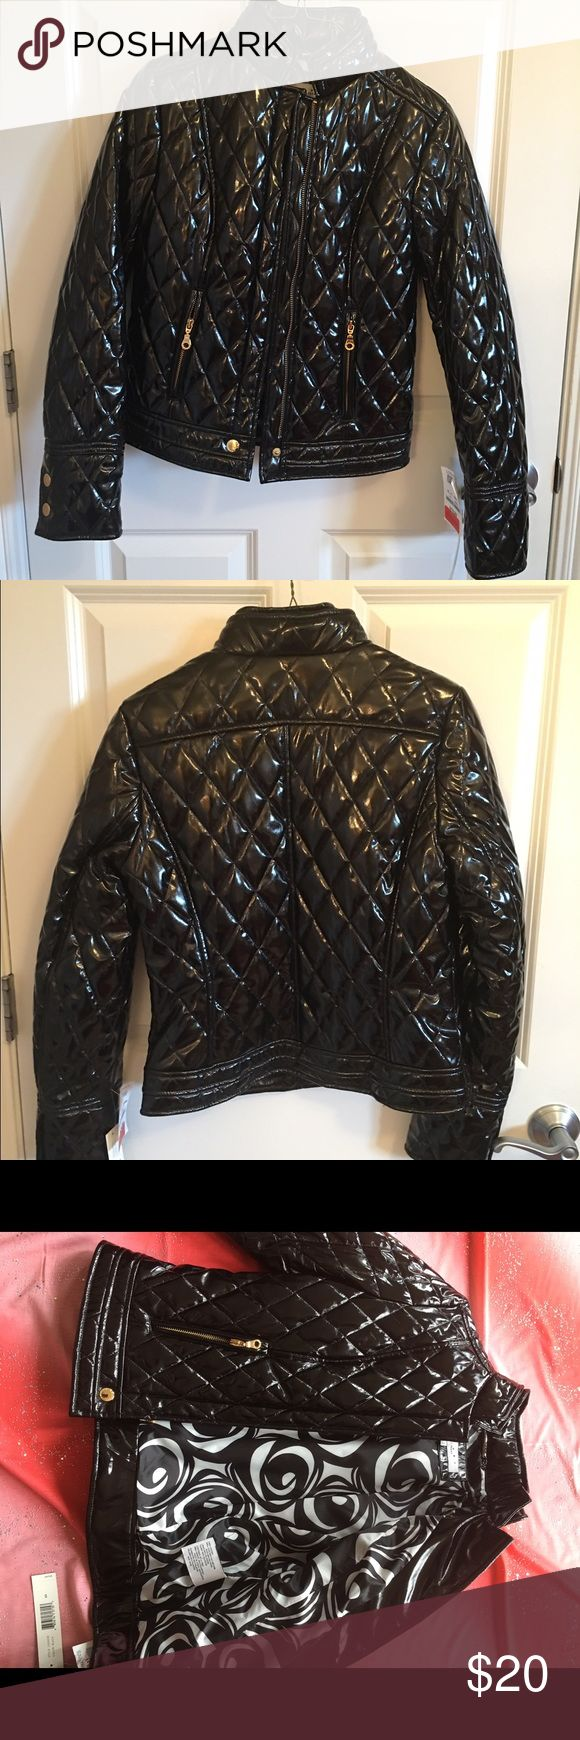 """LAUNDRY Shelli Segal PATENT Faux Leather JACKET Shelli Segal. Black Patent Faux Leather. Center Back Length: 22"""". Black & White Geometric Lining. Black & White Lining. Shell Face: Polyurethane. Double Stand-Up Collar. Laundry by Shelli Segal Jackets & Coats Puffers"""